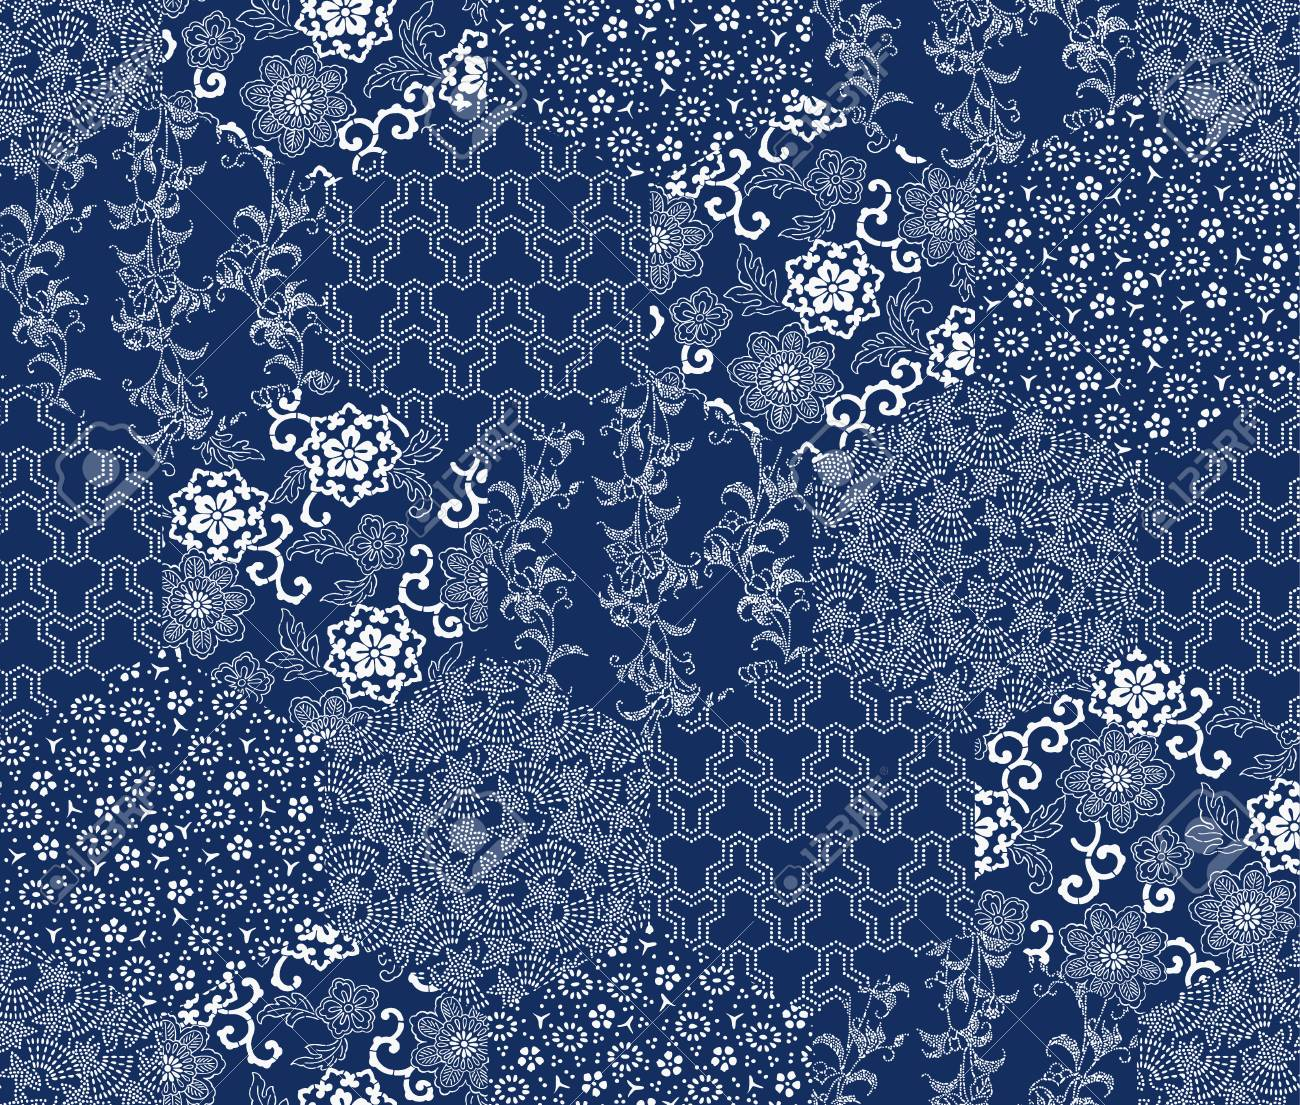 Japanese style pattern patchwork - 47817413